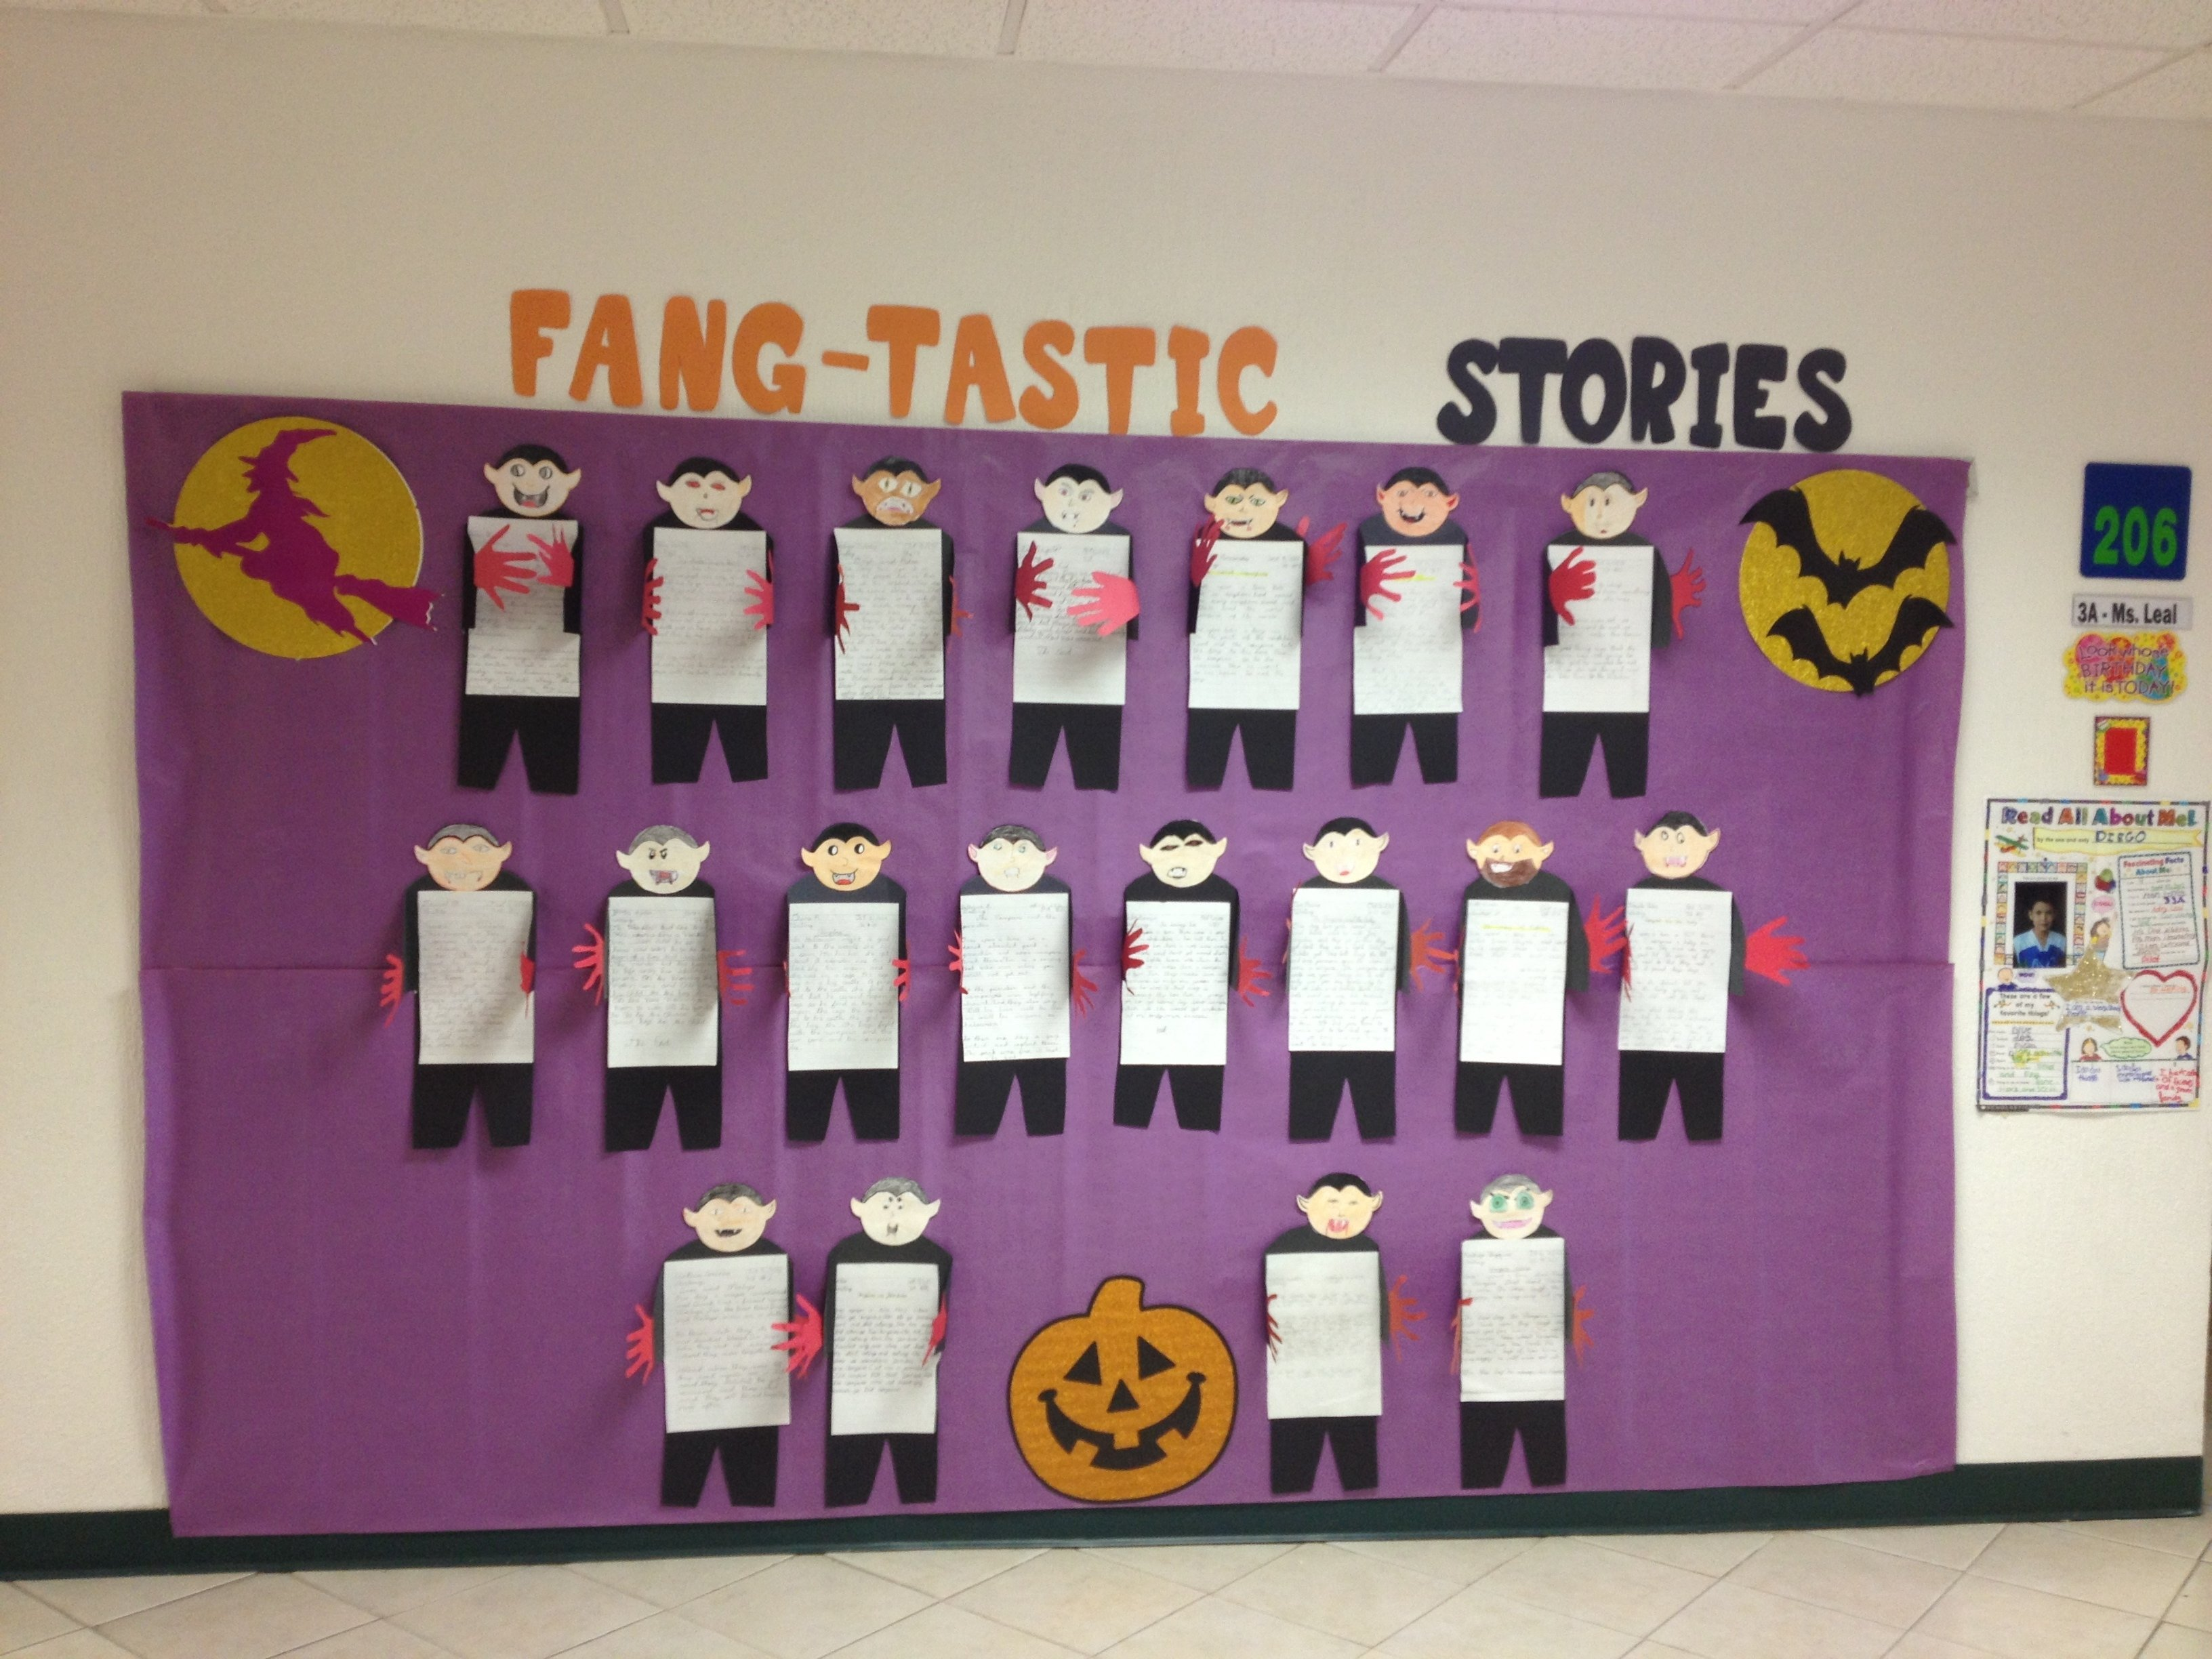 "fang-tastic stories"" is a fan-tastic title for a halloween creative"